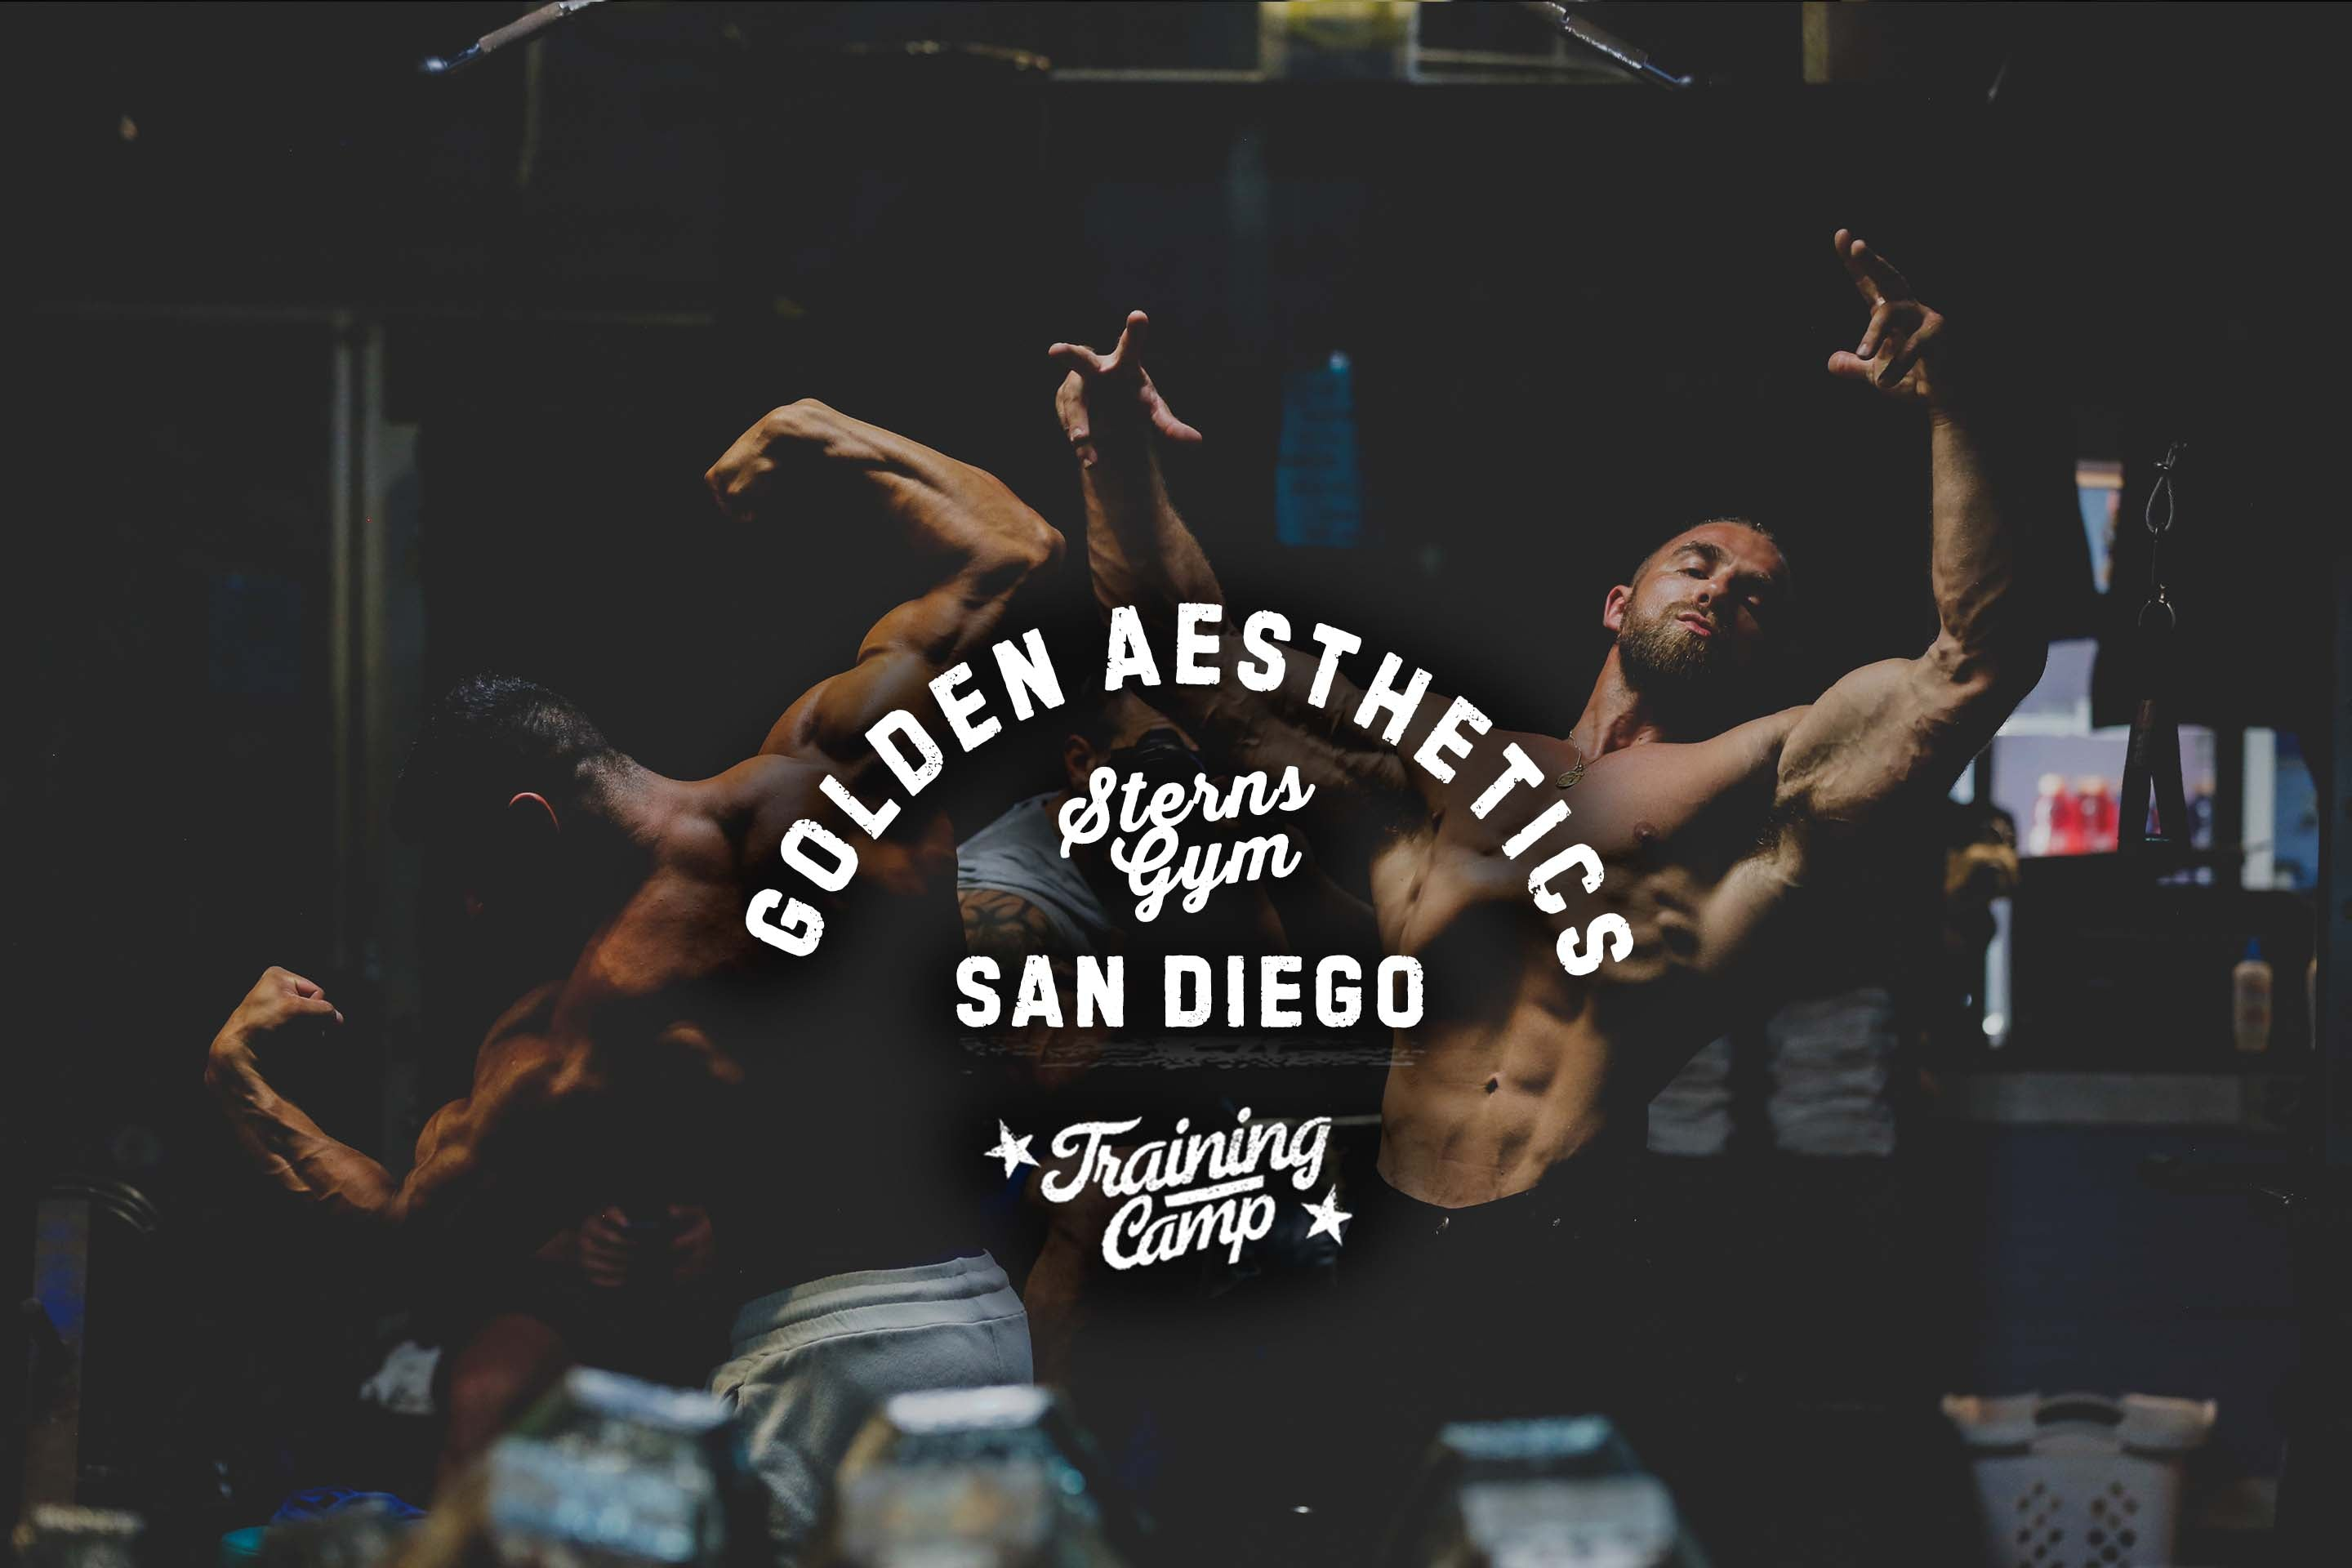 Golden Aesthetics Camp 2019 - SAN DIEGO, CA - Golden Aesthetics